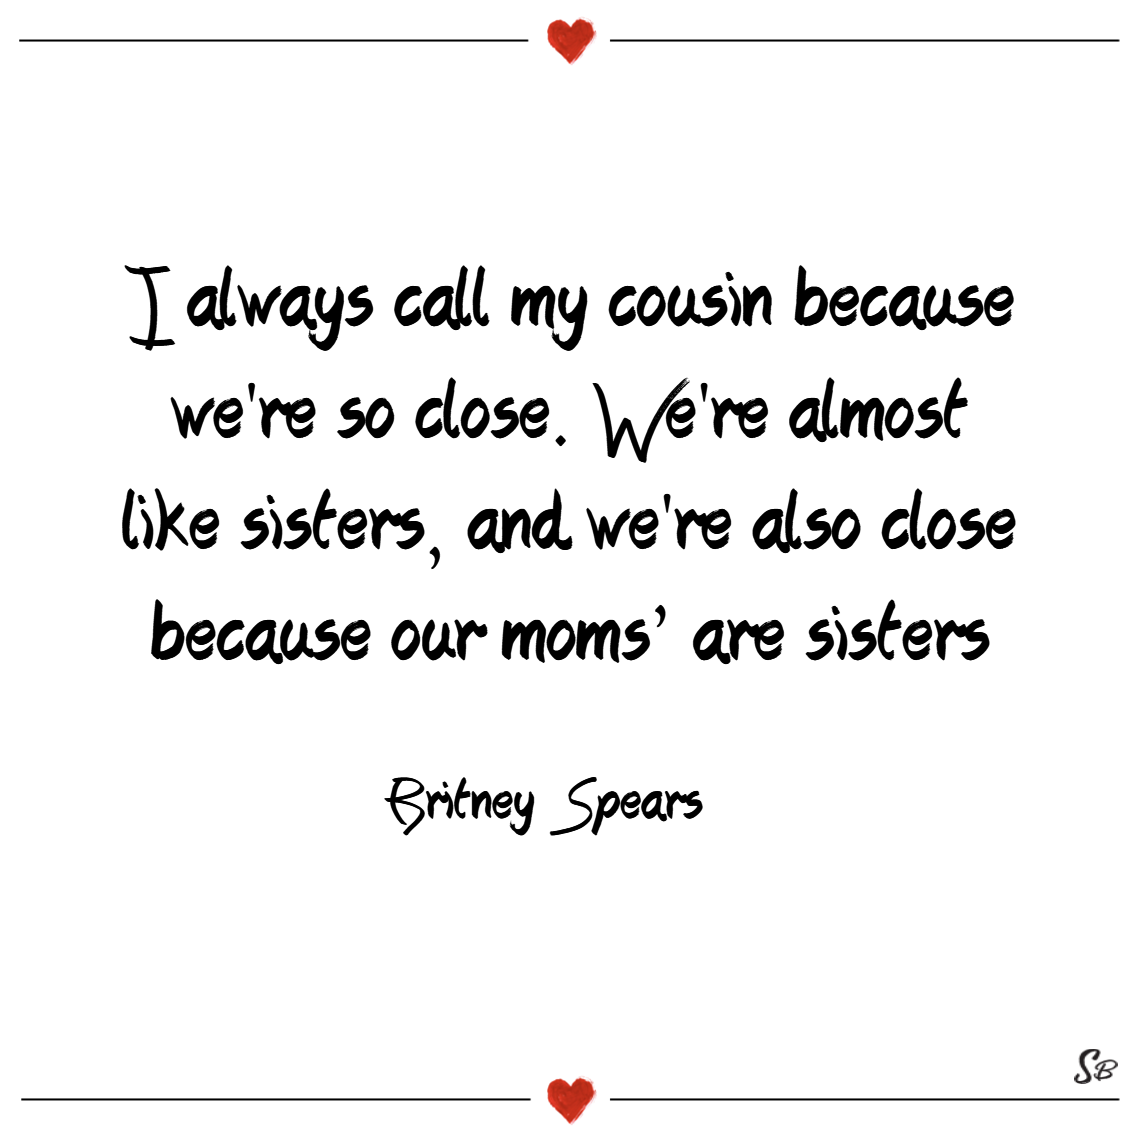 I always call my cousin because we're so close. we're almost like sisters, and we're also close because our moms' are sisters. – britney spears